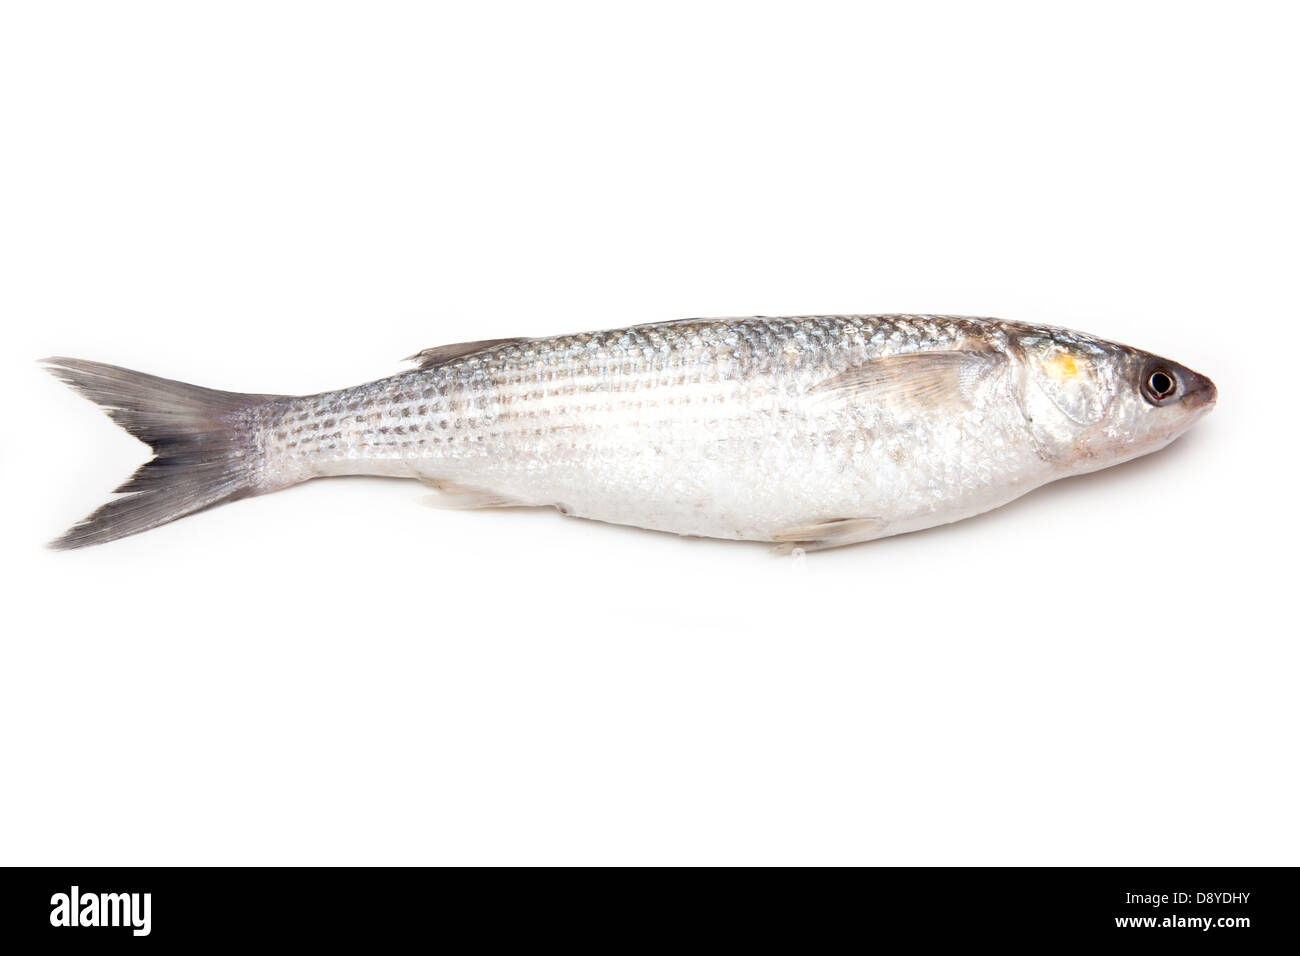 how to catch grey mullet nz